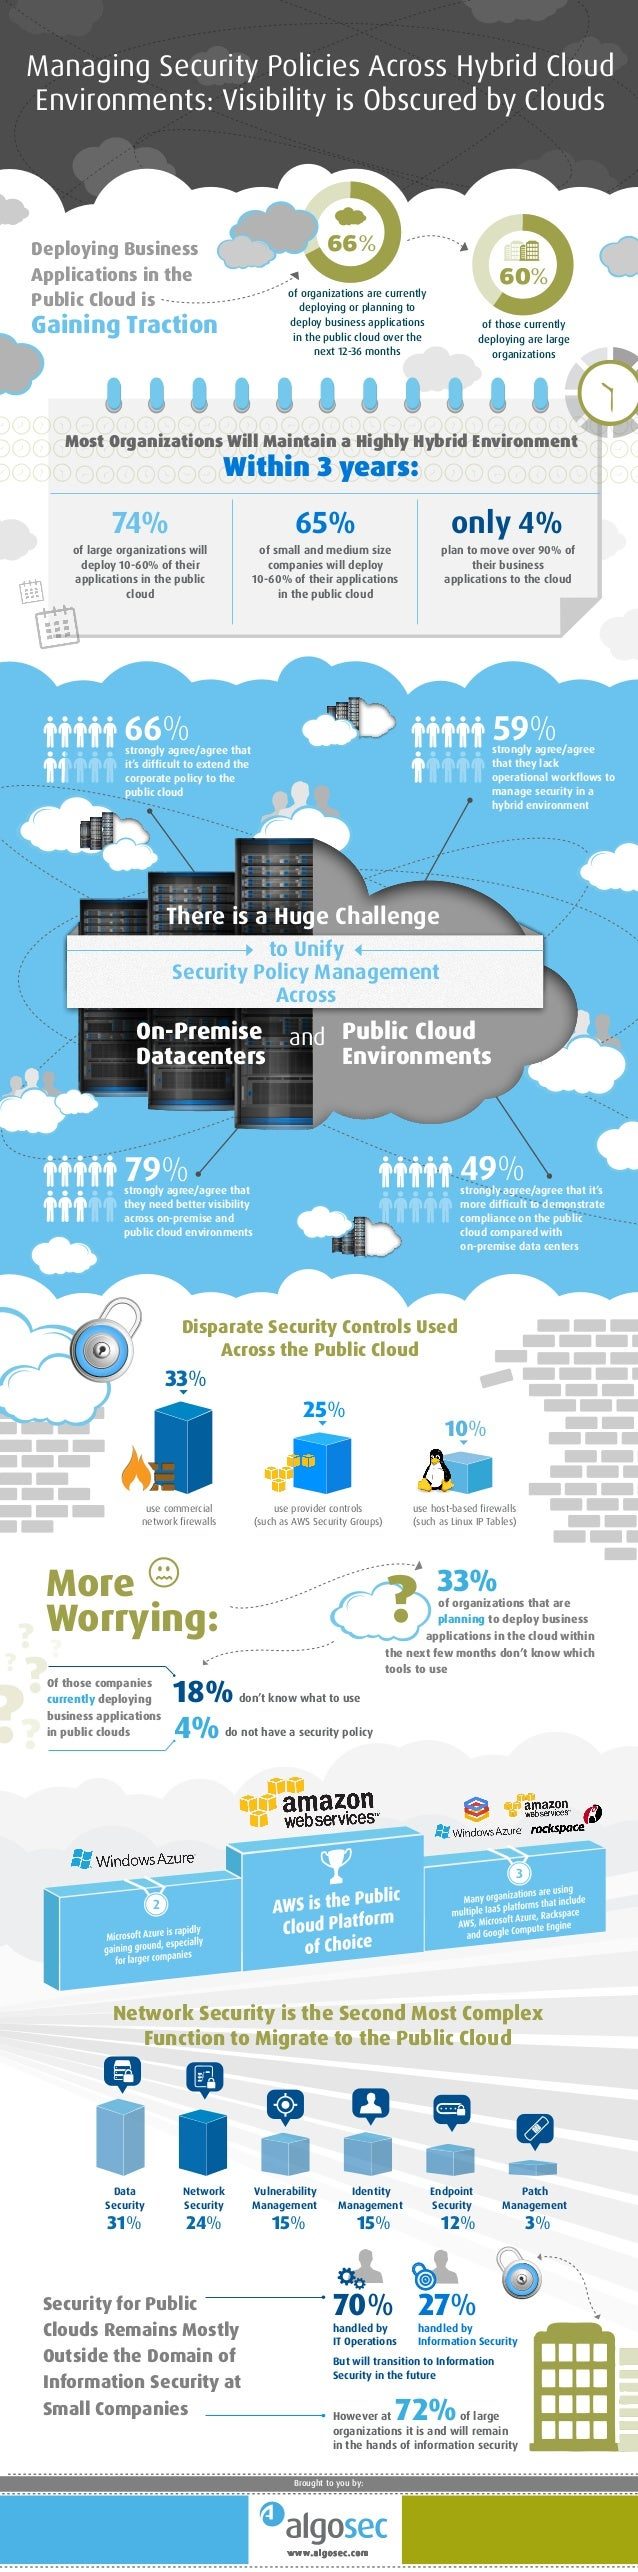 strongly agree/agree that they need better visibility across on-premise and public cloud environments Deploying Business A...